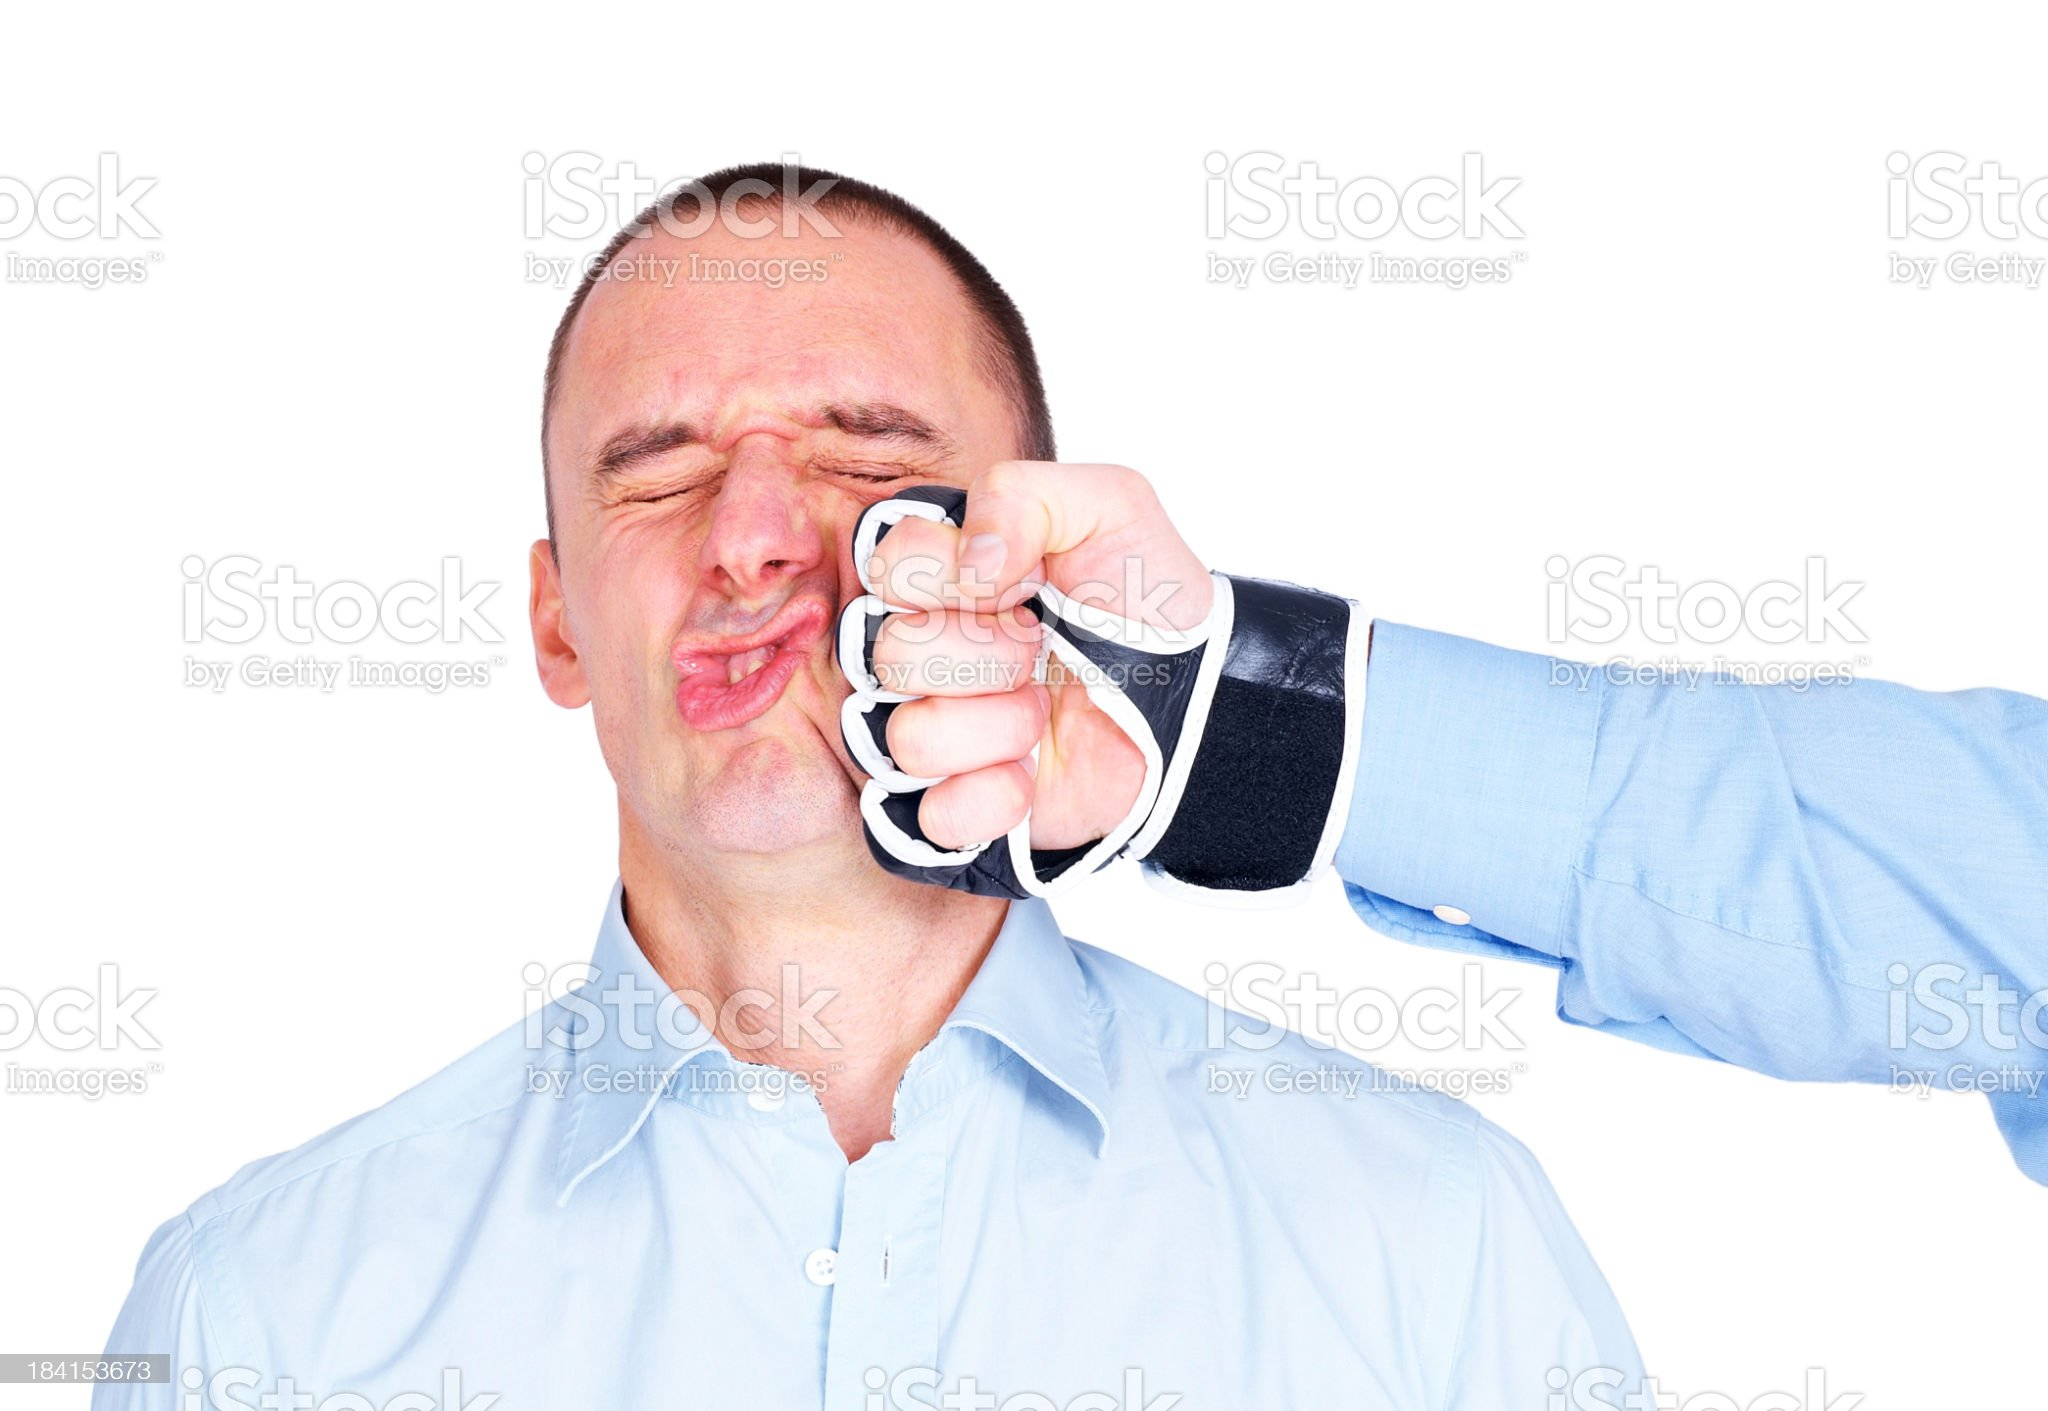 Business man getting punched on his face royalty-free stock photo